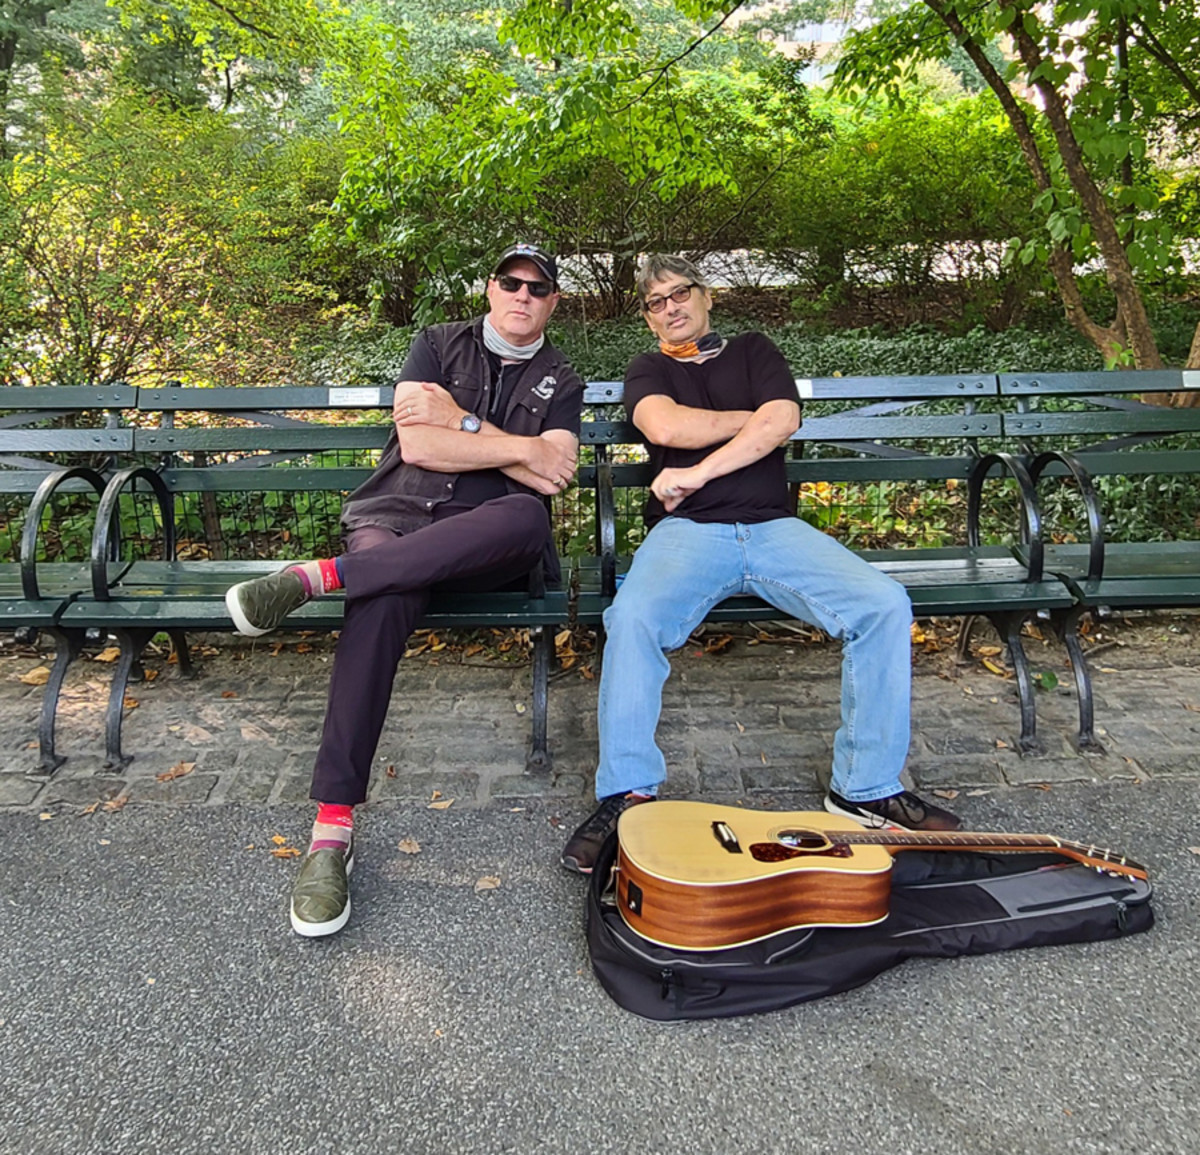 """Goldmine's """"Now We're 64"""" columnist John """"Jay Jay"""" French with David Muniz at the Strawberry Fields location in Central Park."""